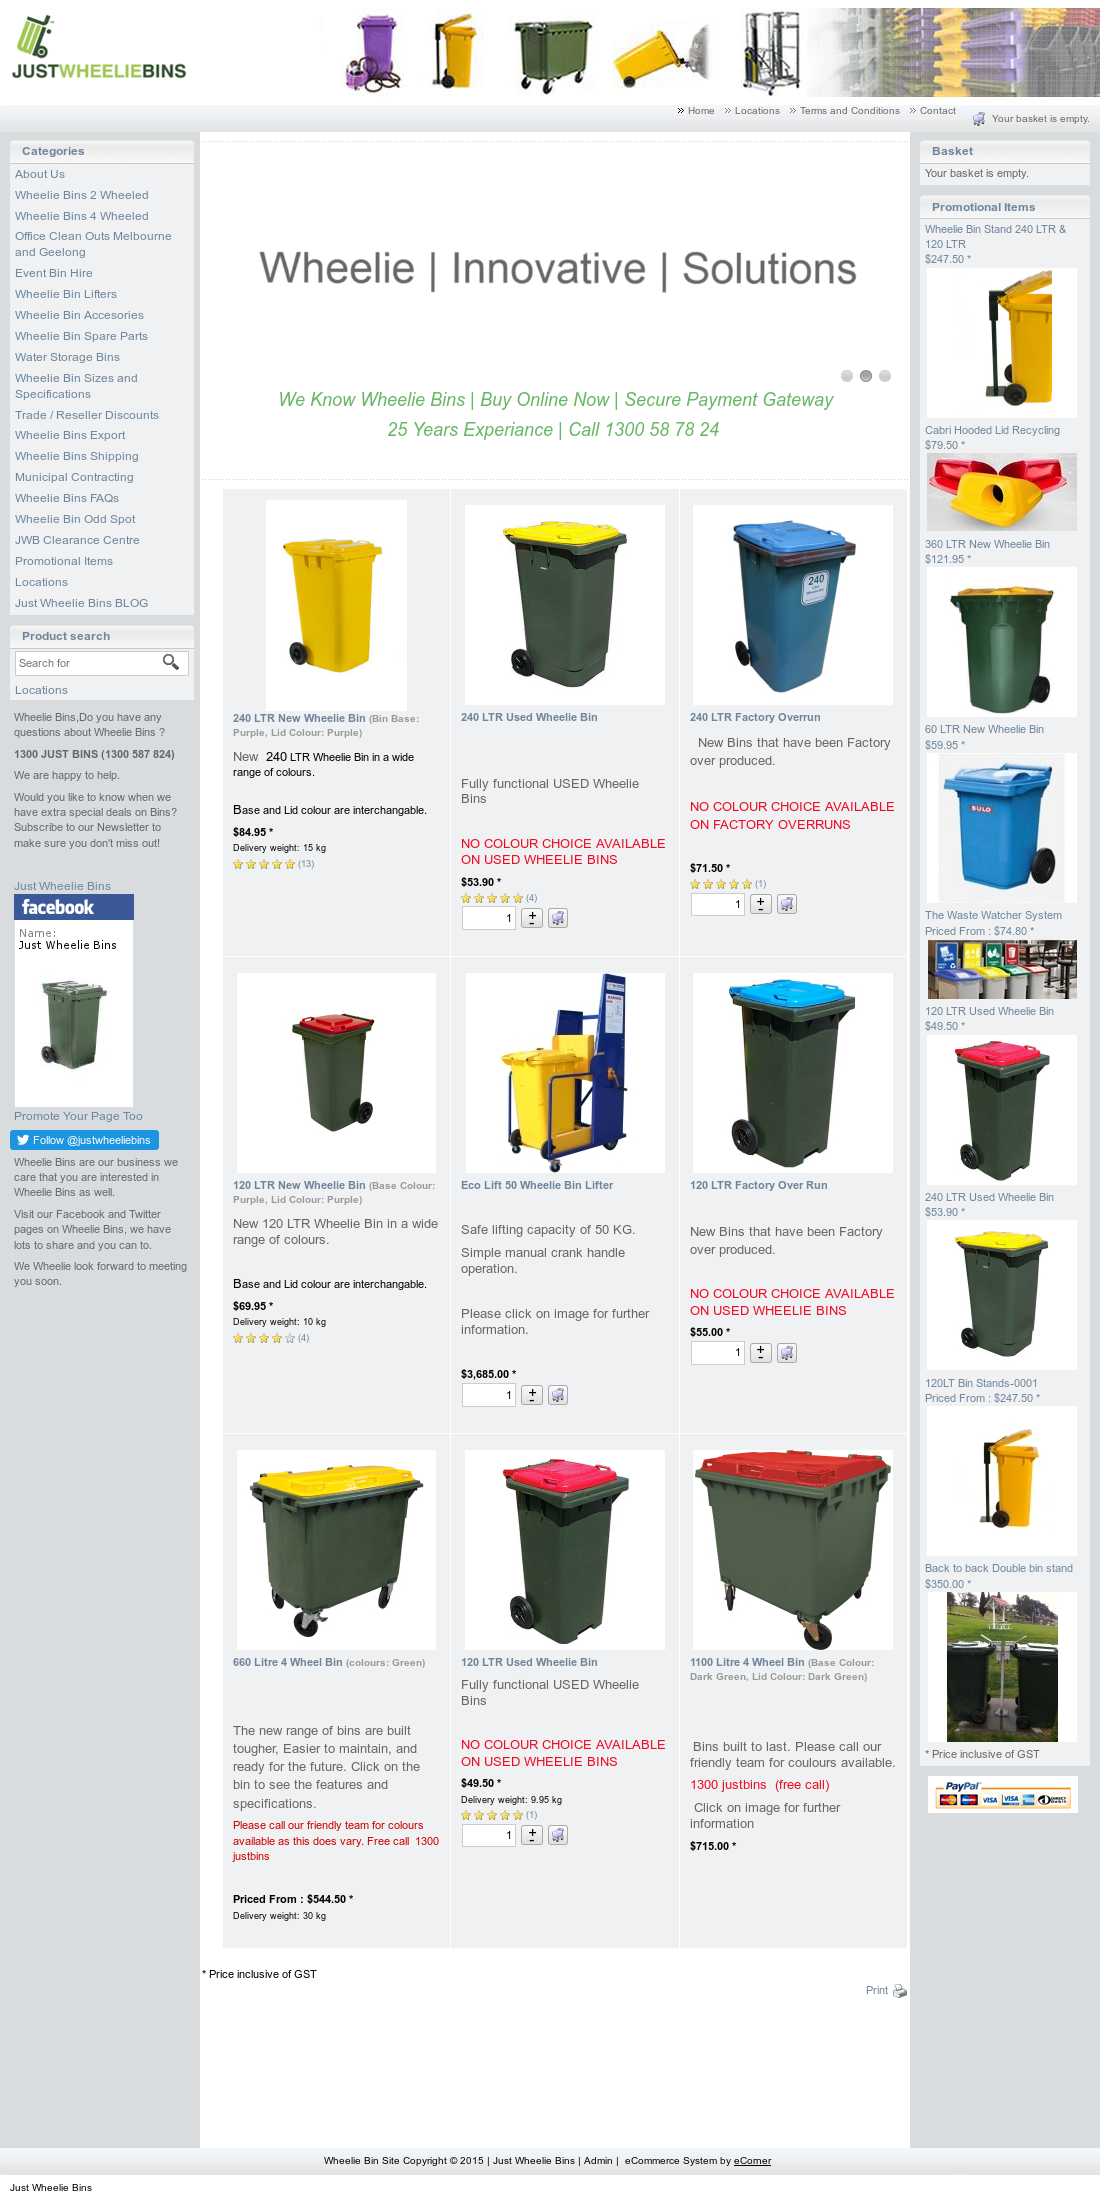 Just Wheelie Bins Competitors, Revenue and Employees - Owler Company